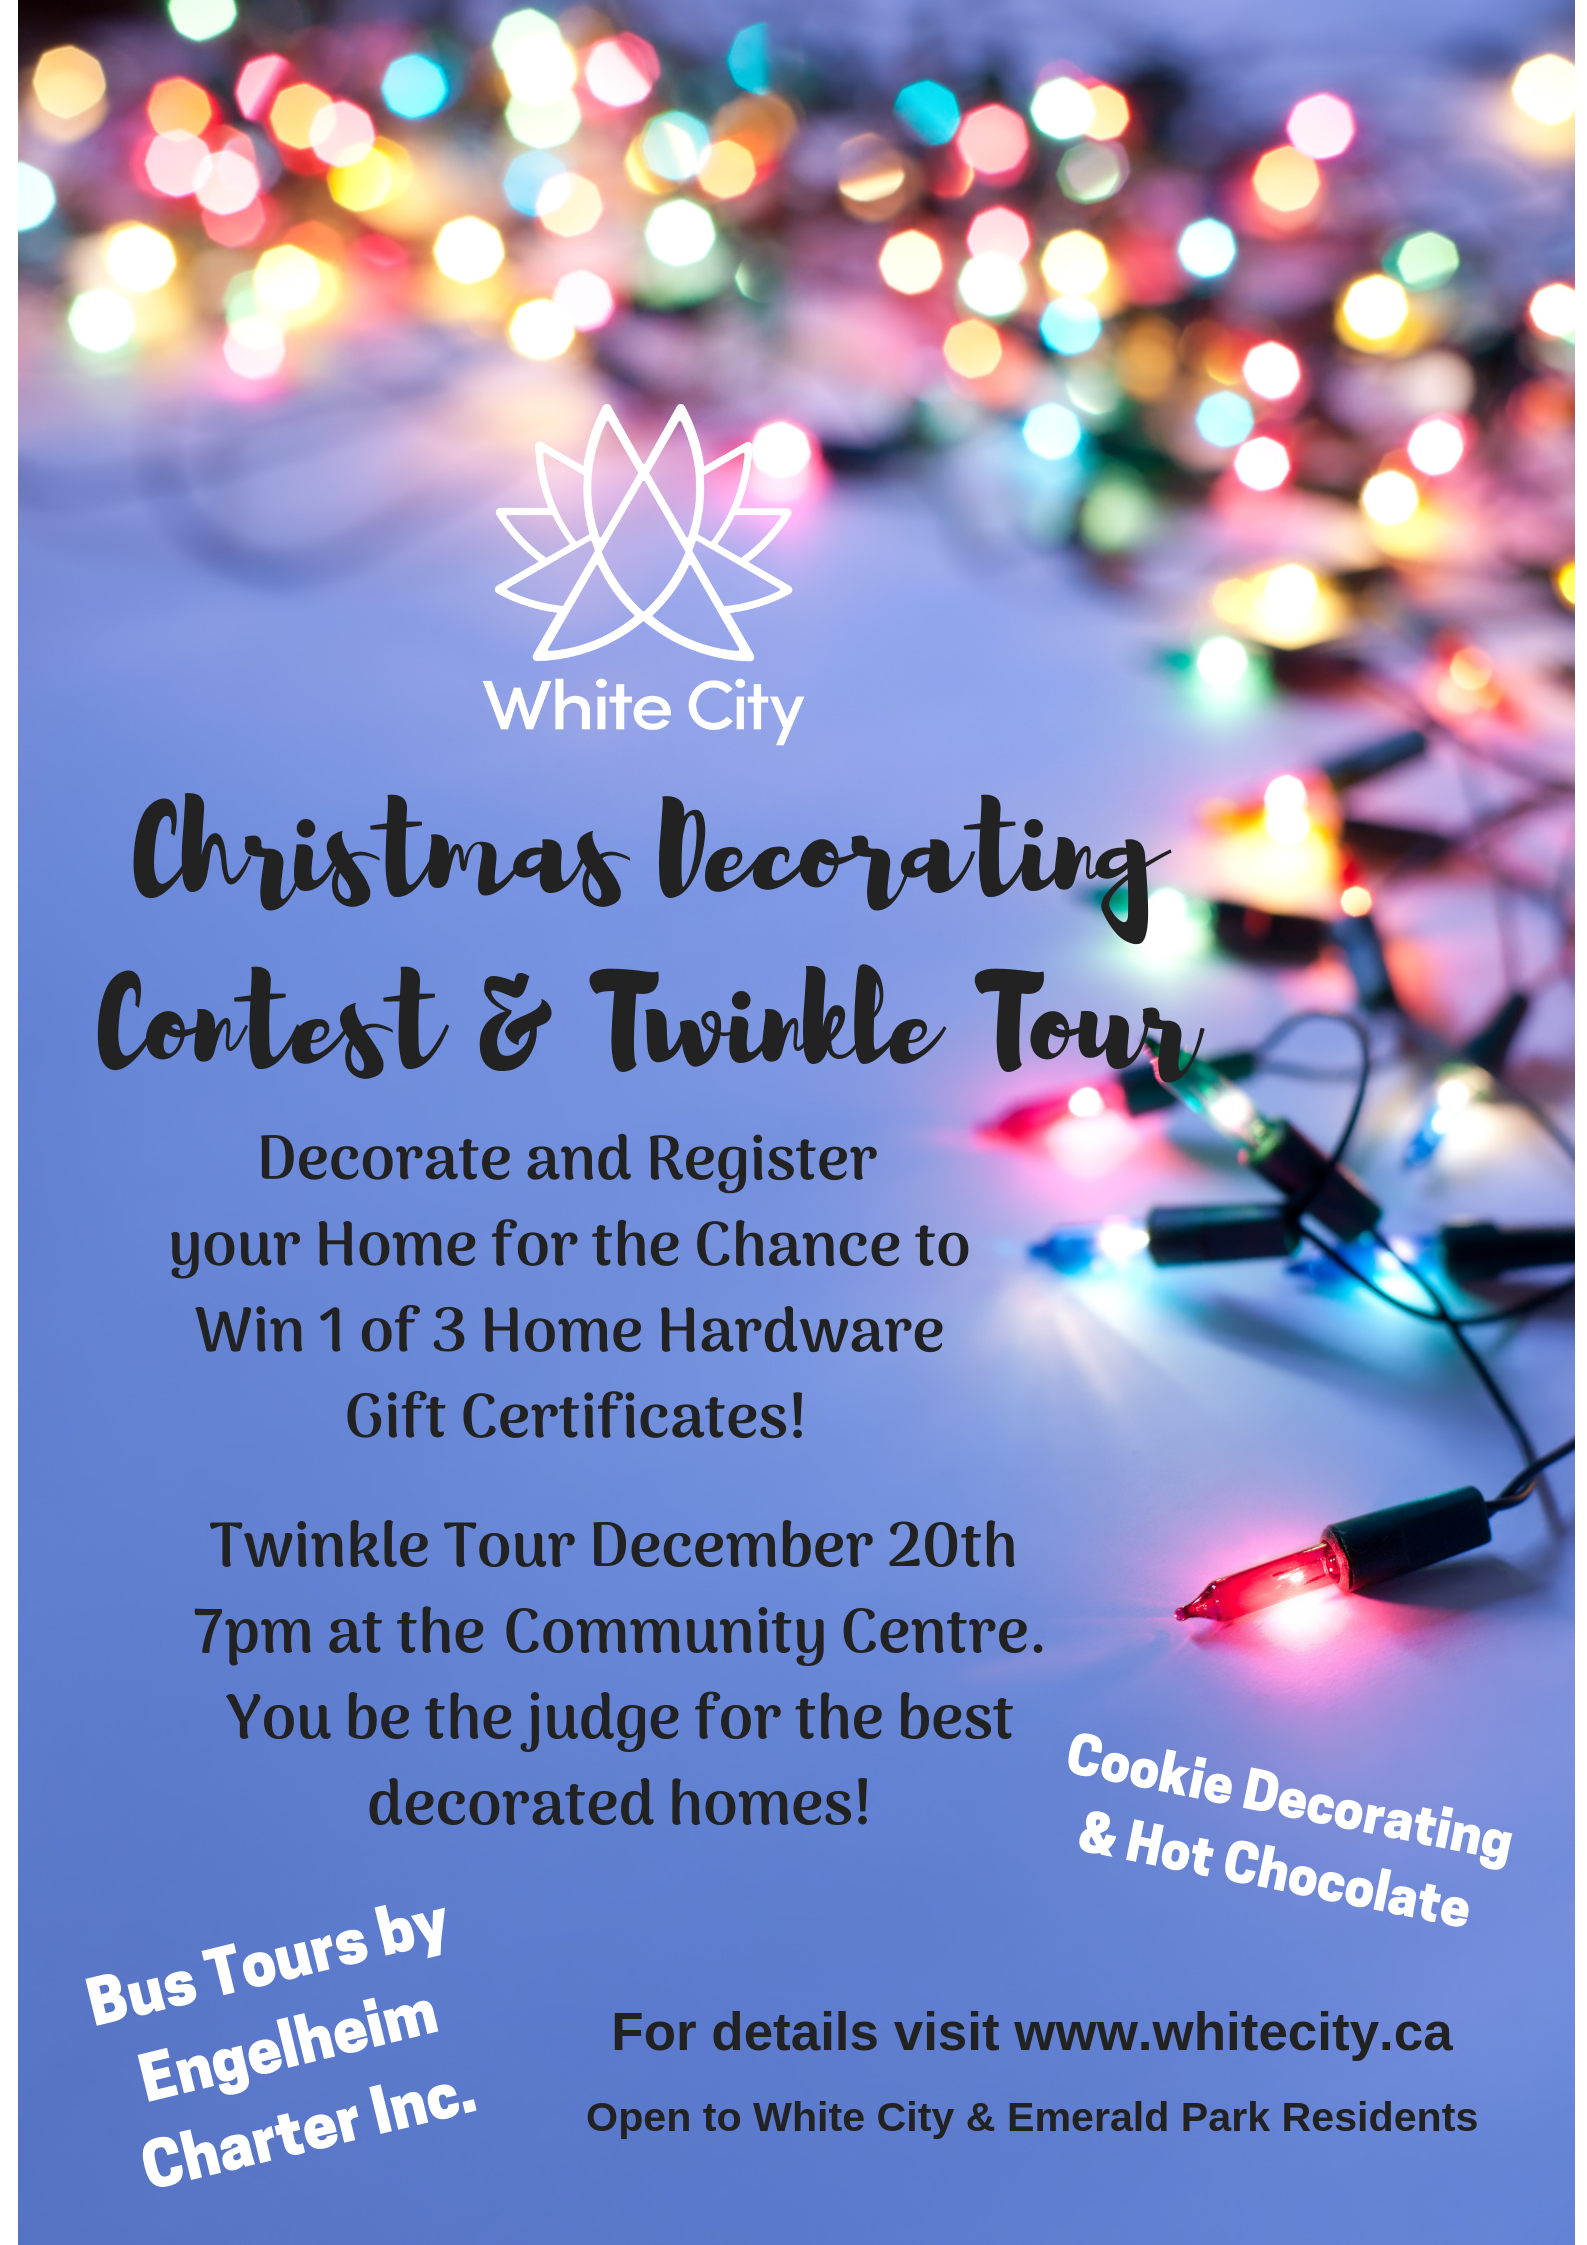 Christmas Decorating/Twinkle Tour